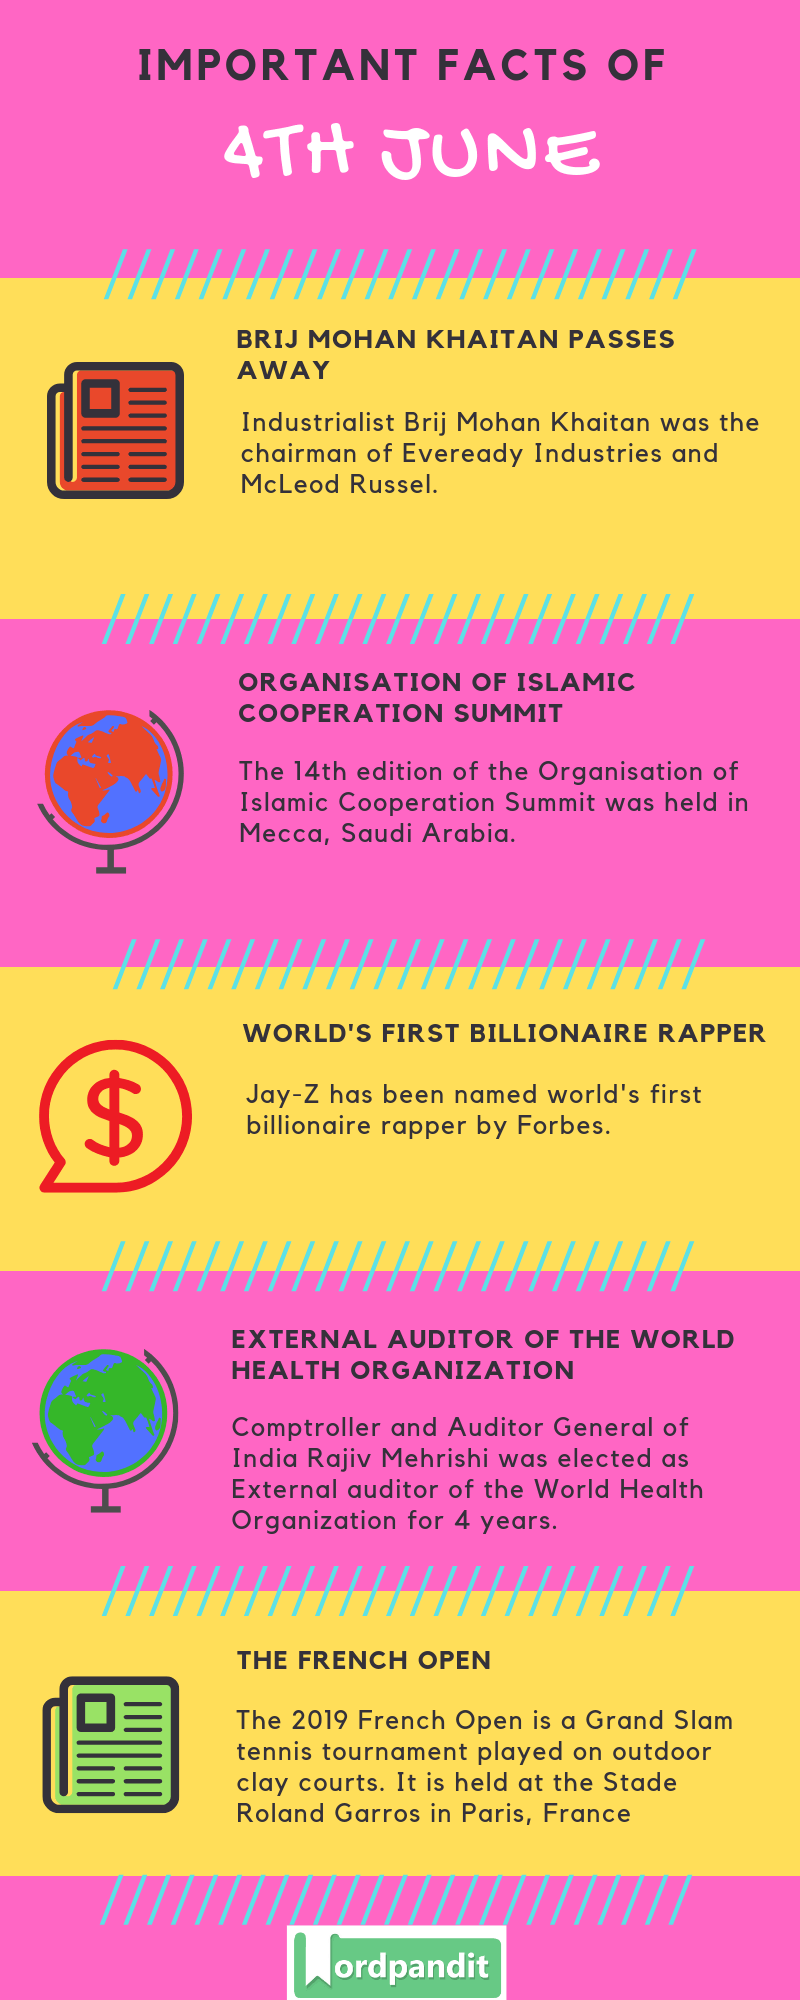 Daily Current Affairs 4 June 2019 Current Affairs Quiz 4 June 2019 Current Affairs Infographic